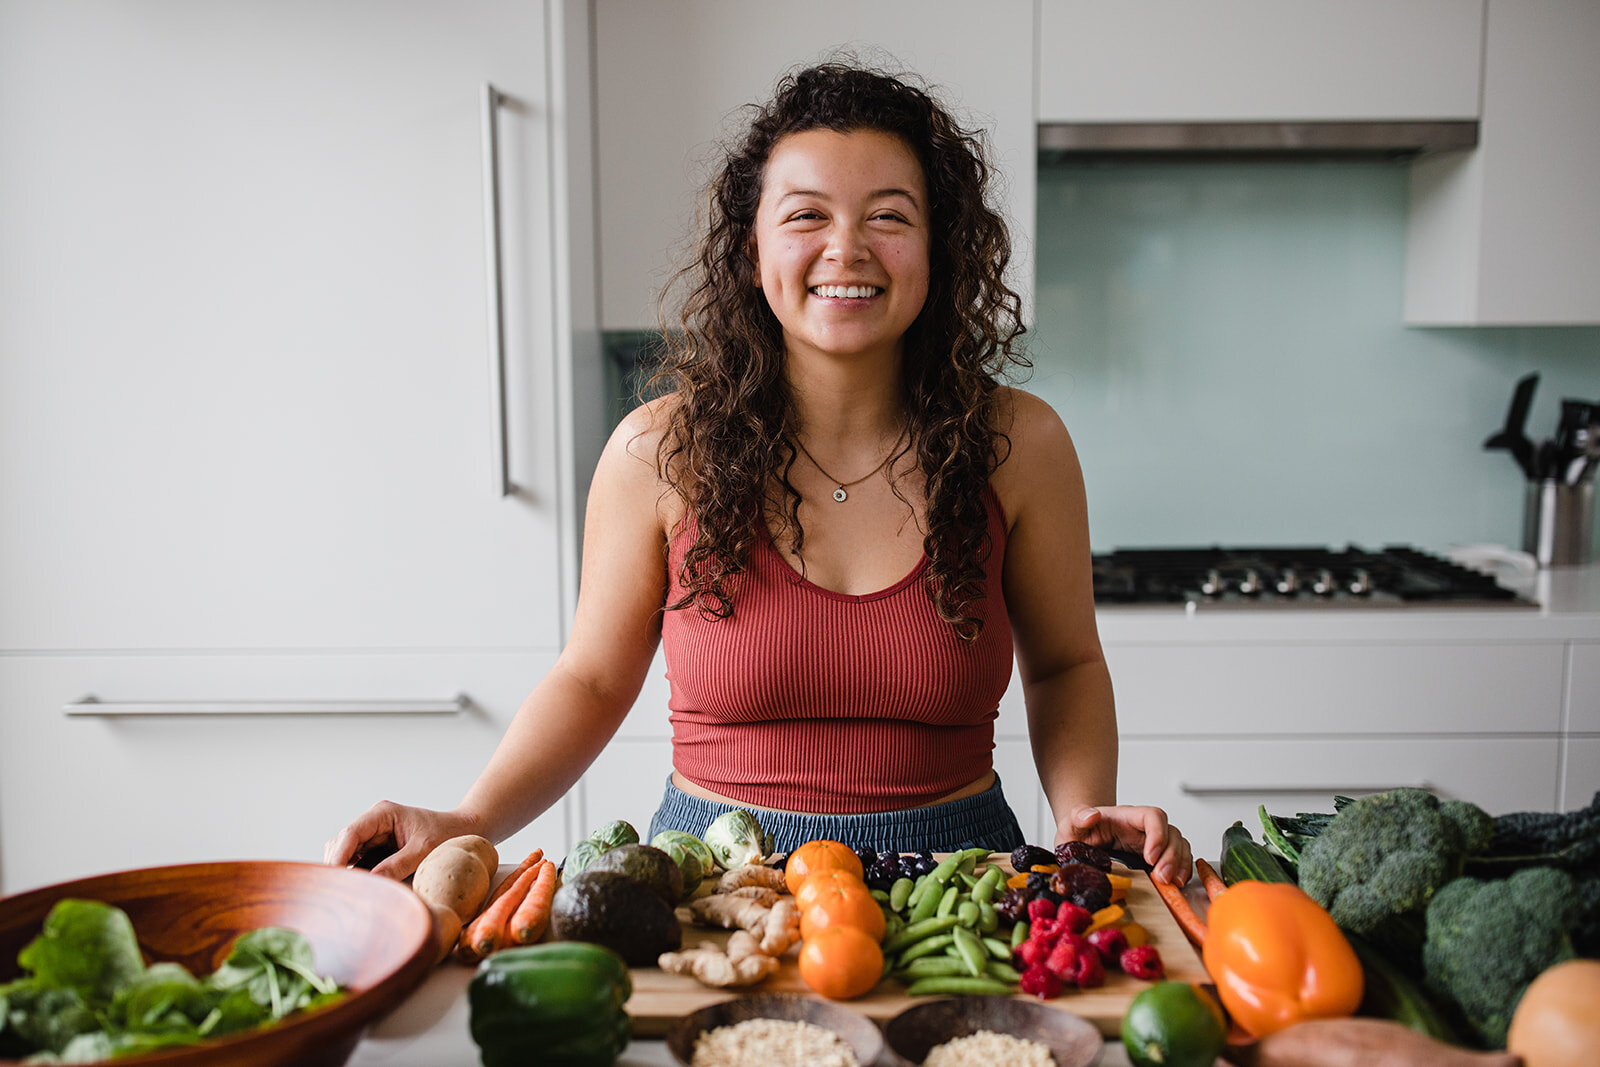 Woman smiling in kitchen with fresh vegetables